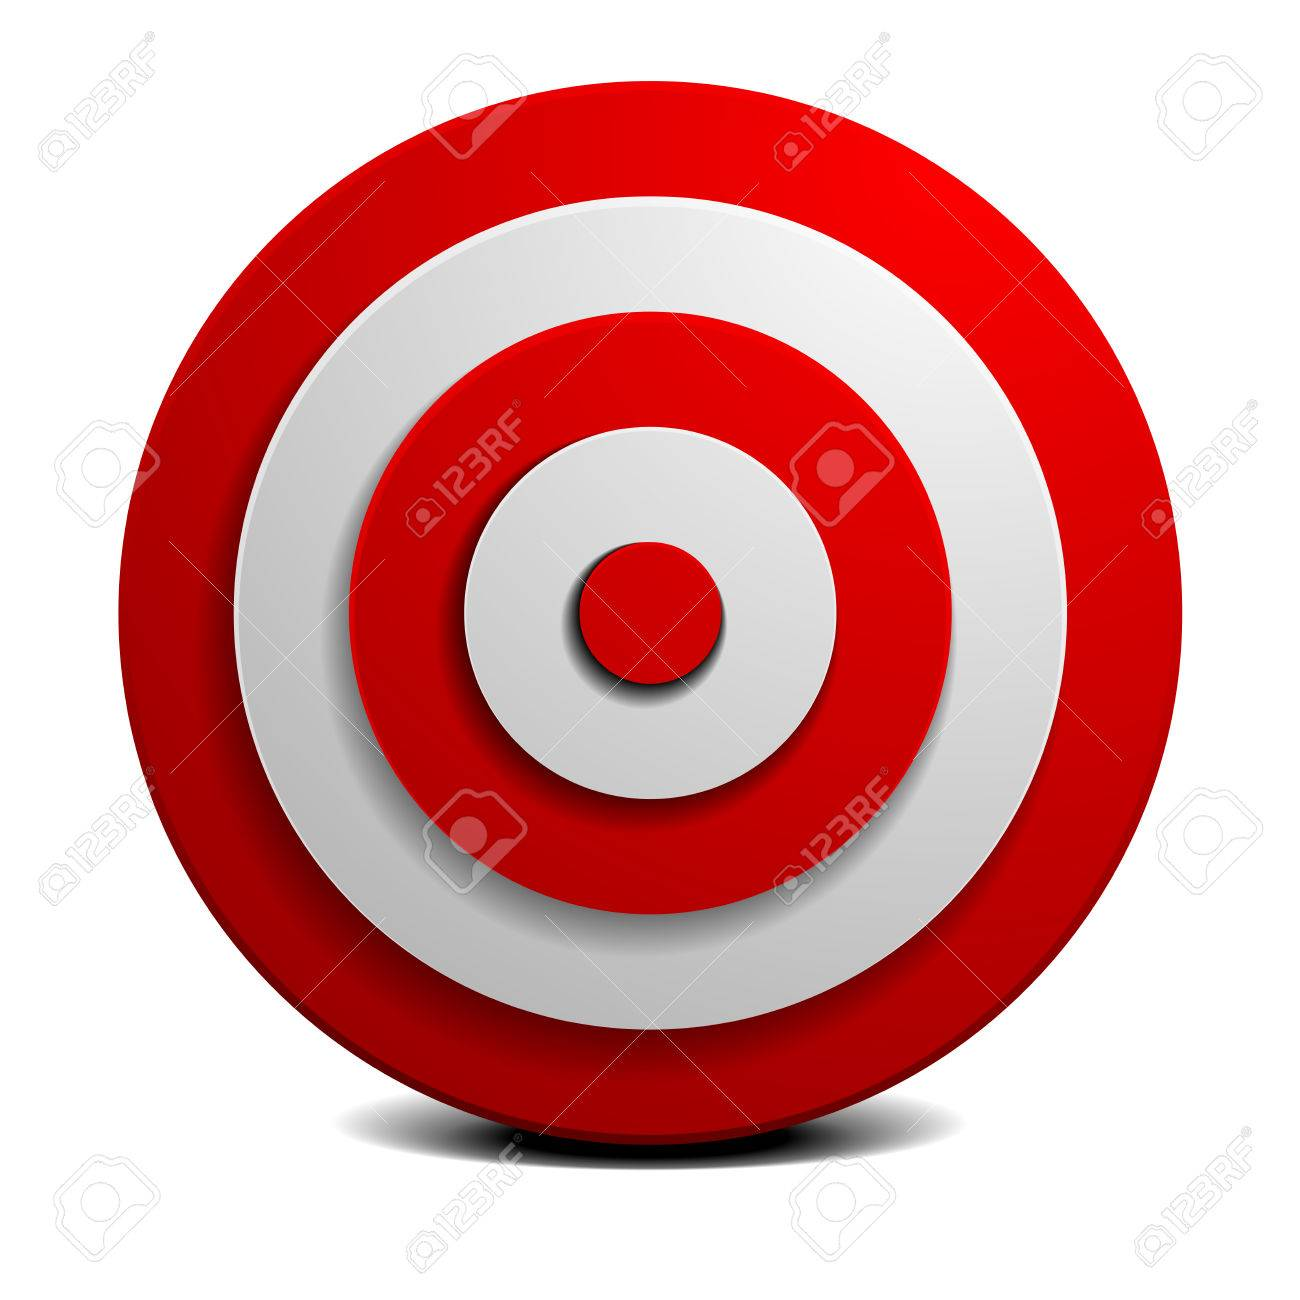 detailed illustration of a red and white target, vector - 47852551